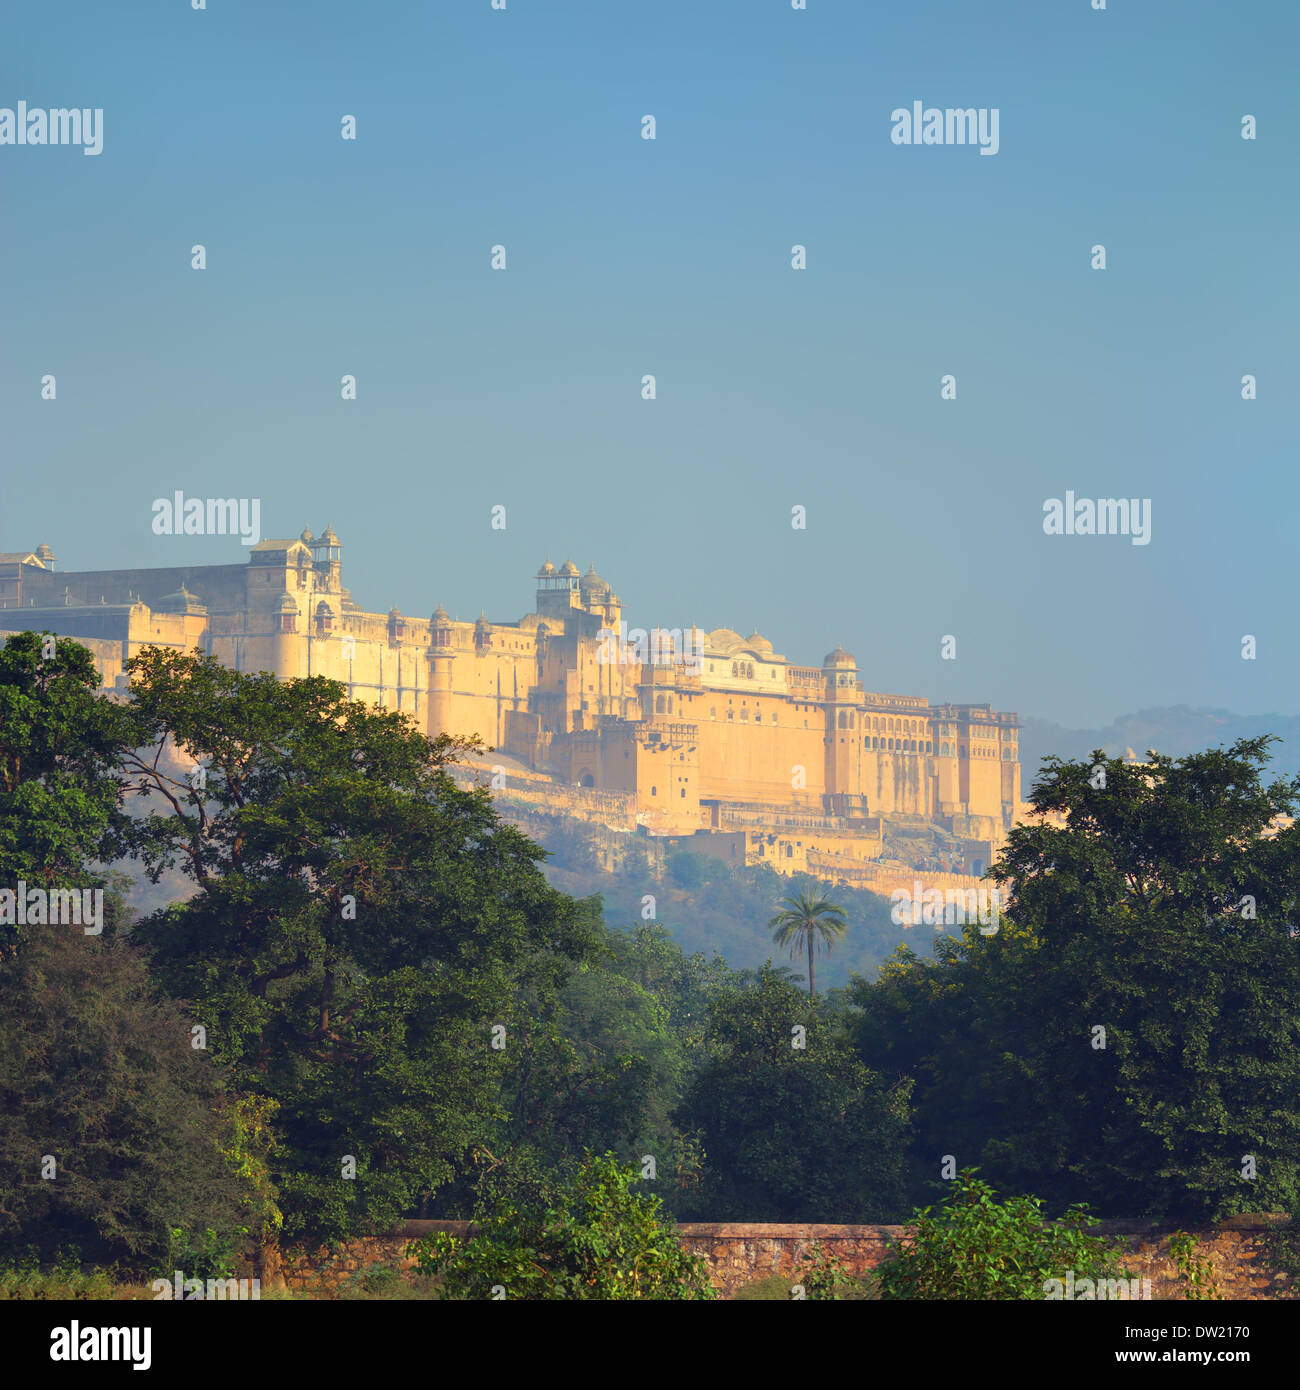 landscape with Amber fort in India - Stock Image